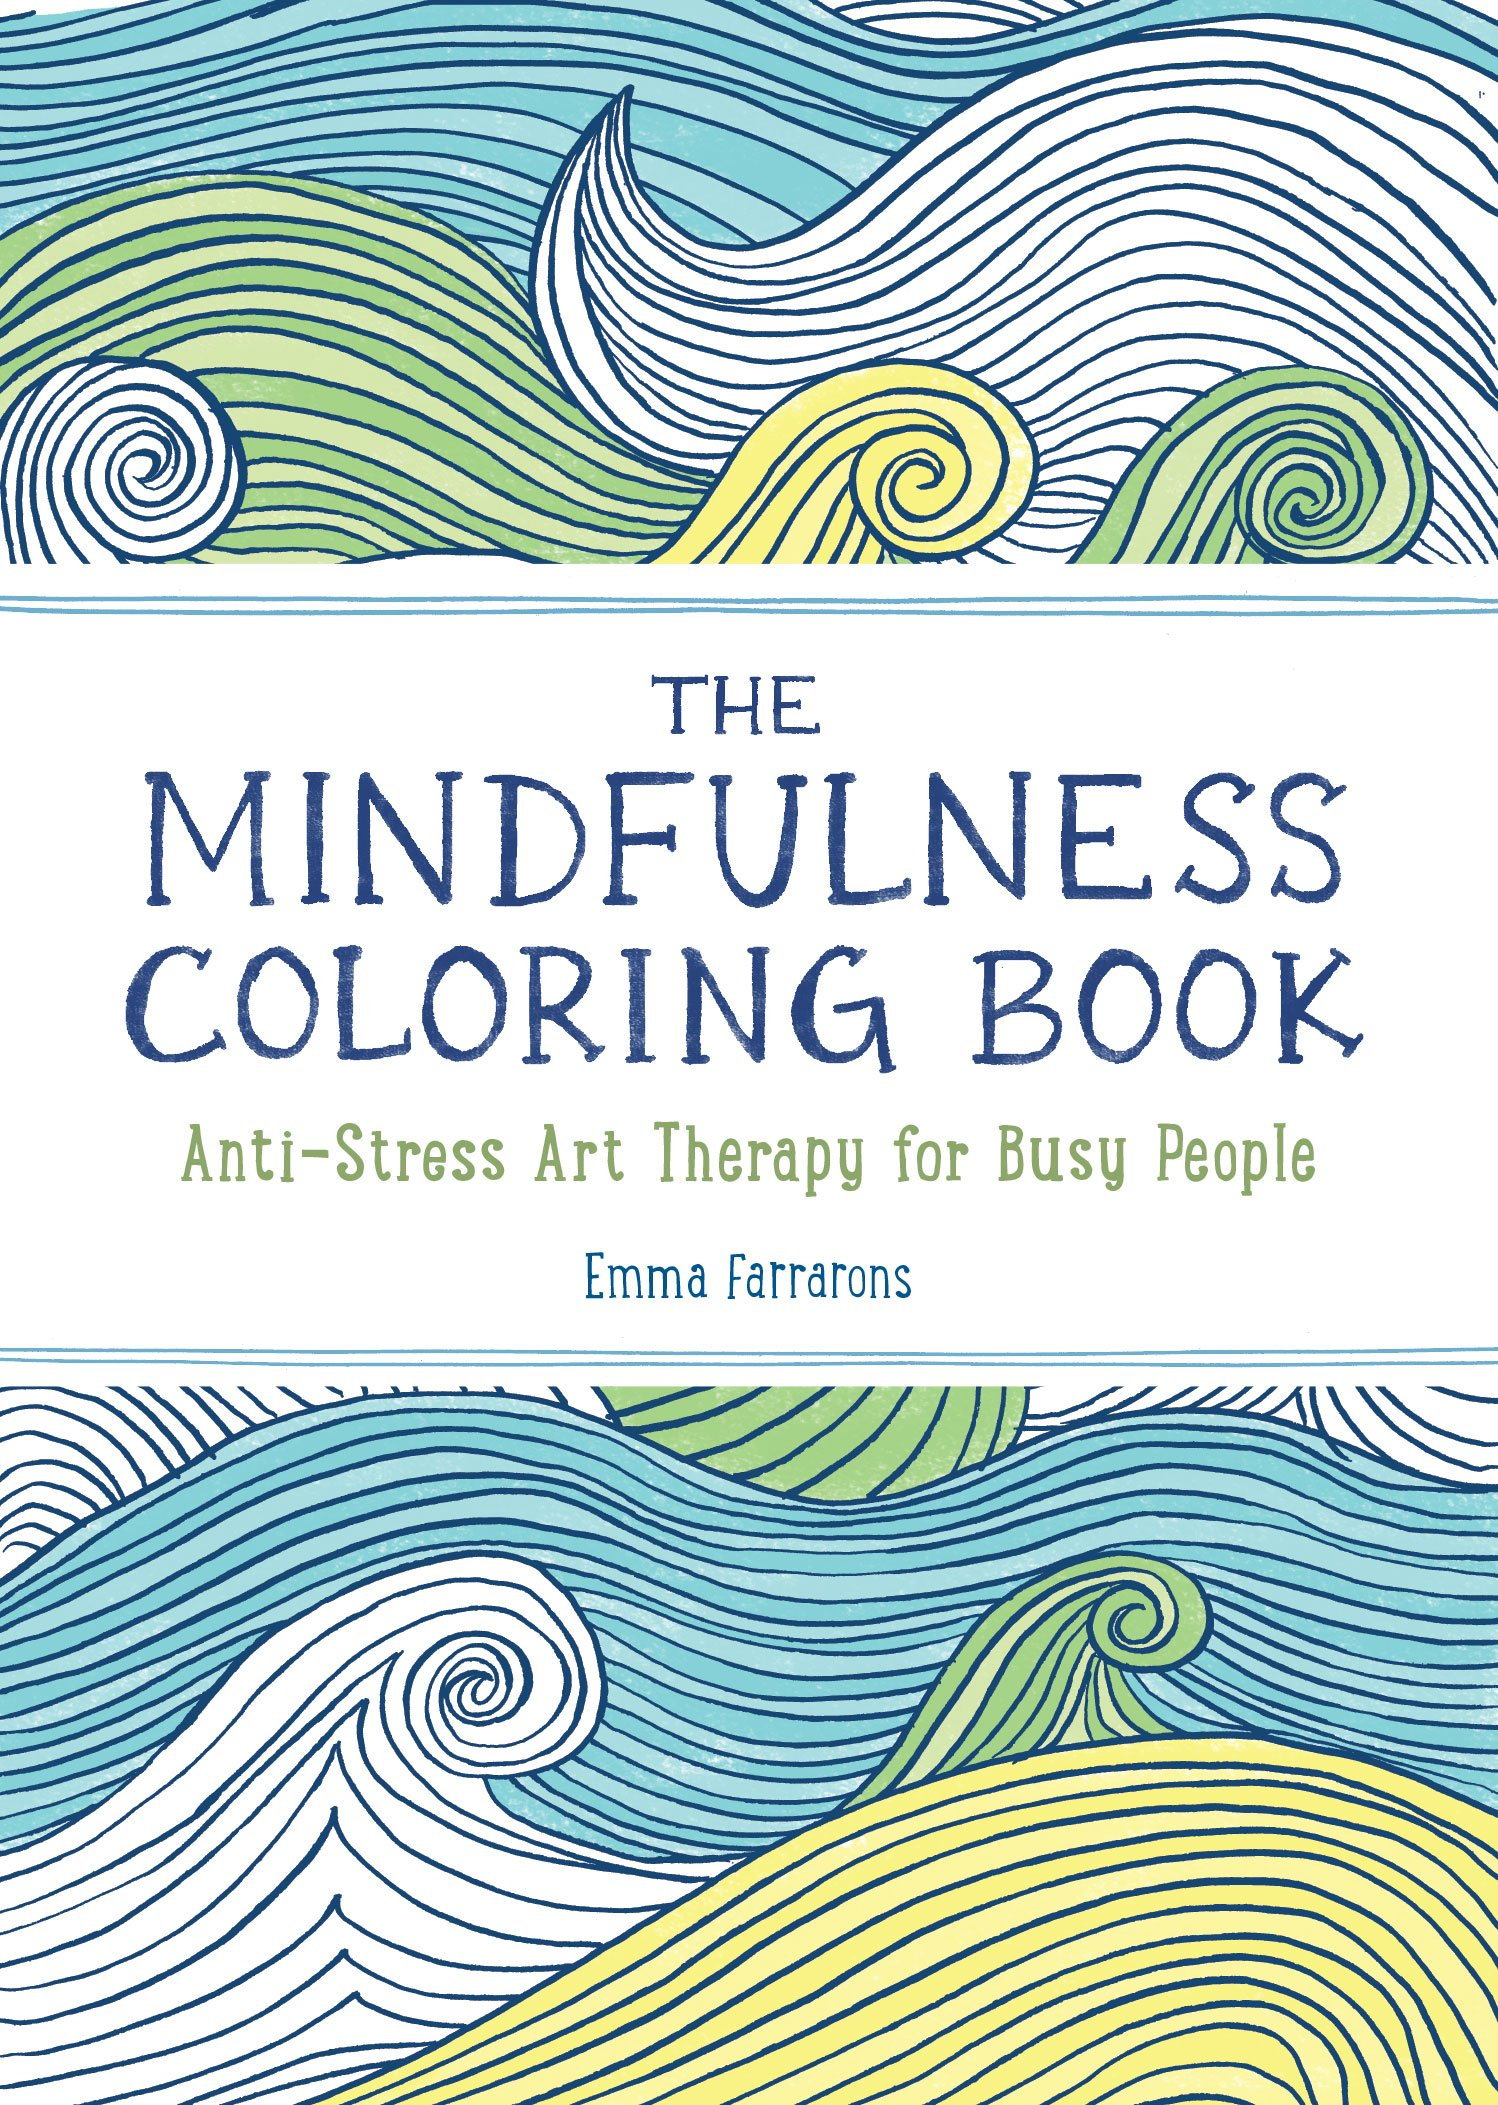 1 the mindfulness coloring book anti stress art therapy for busy people the mindfulness coloring series emma farrarons 9781615192823 amazoncom - Coloring Books